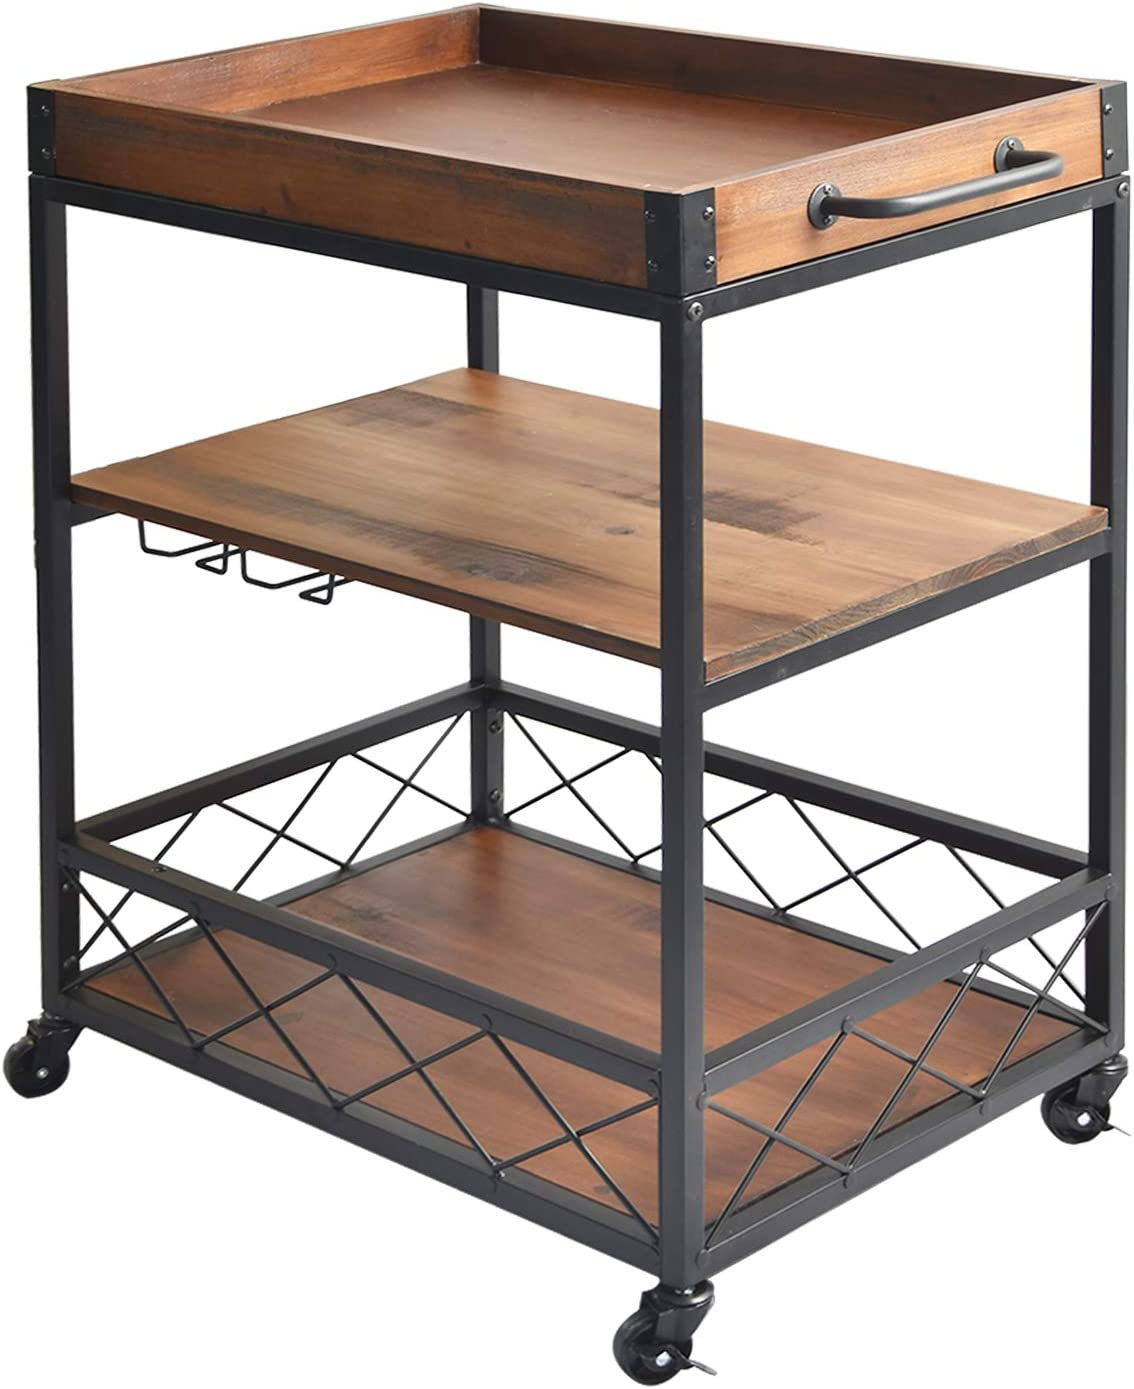 charaHOME Solid Wood Kitchen Serving Carts Rolling Bar Cart with 9 Tier  Storage Shelves Kitchen Island Cart with Wine Glass Holder,Handle ...